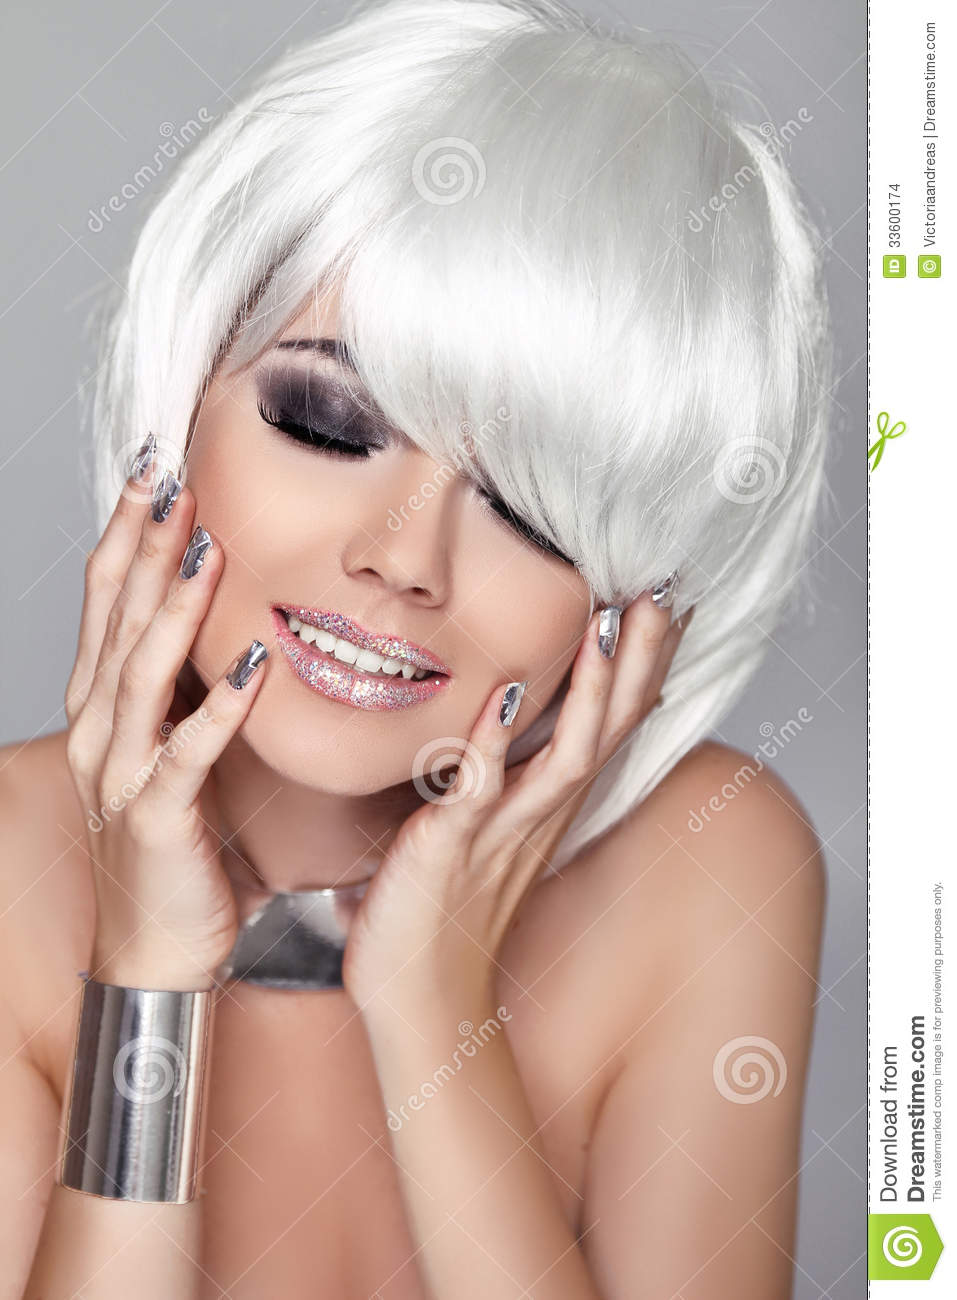 haircuts for white hair portrait of hair stock image 4565